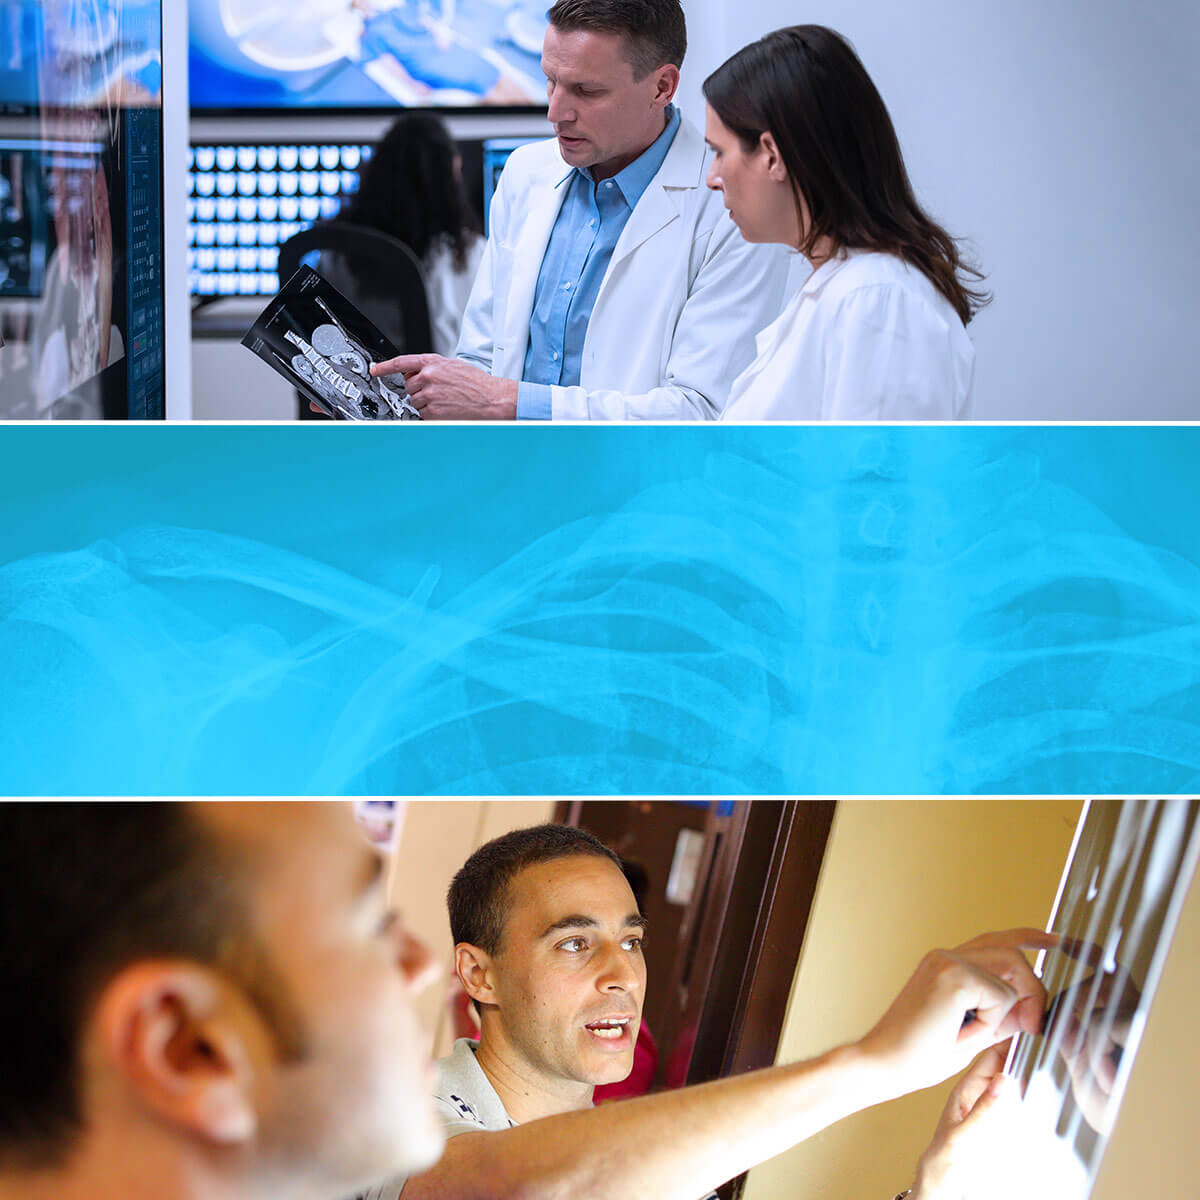 A series of three images that depict what radiologists do, including reviewing results of various diagnostic imaging tests